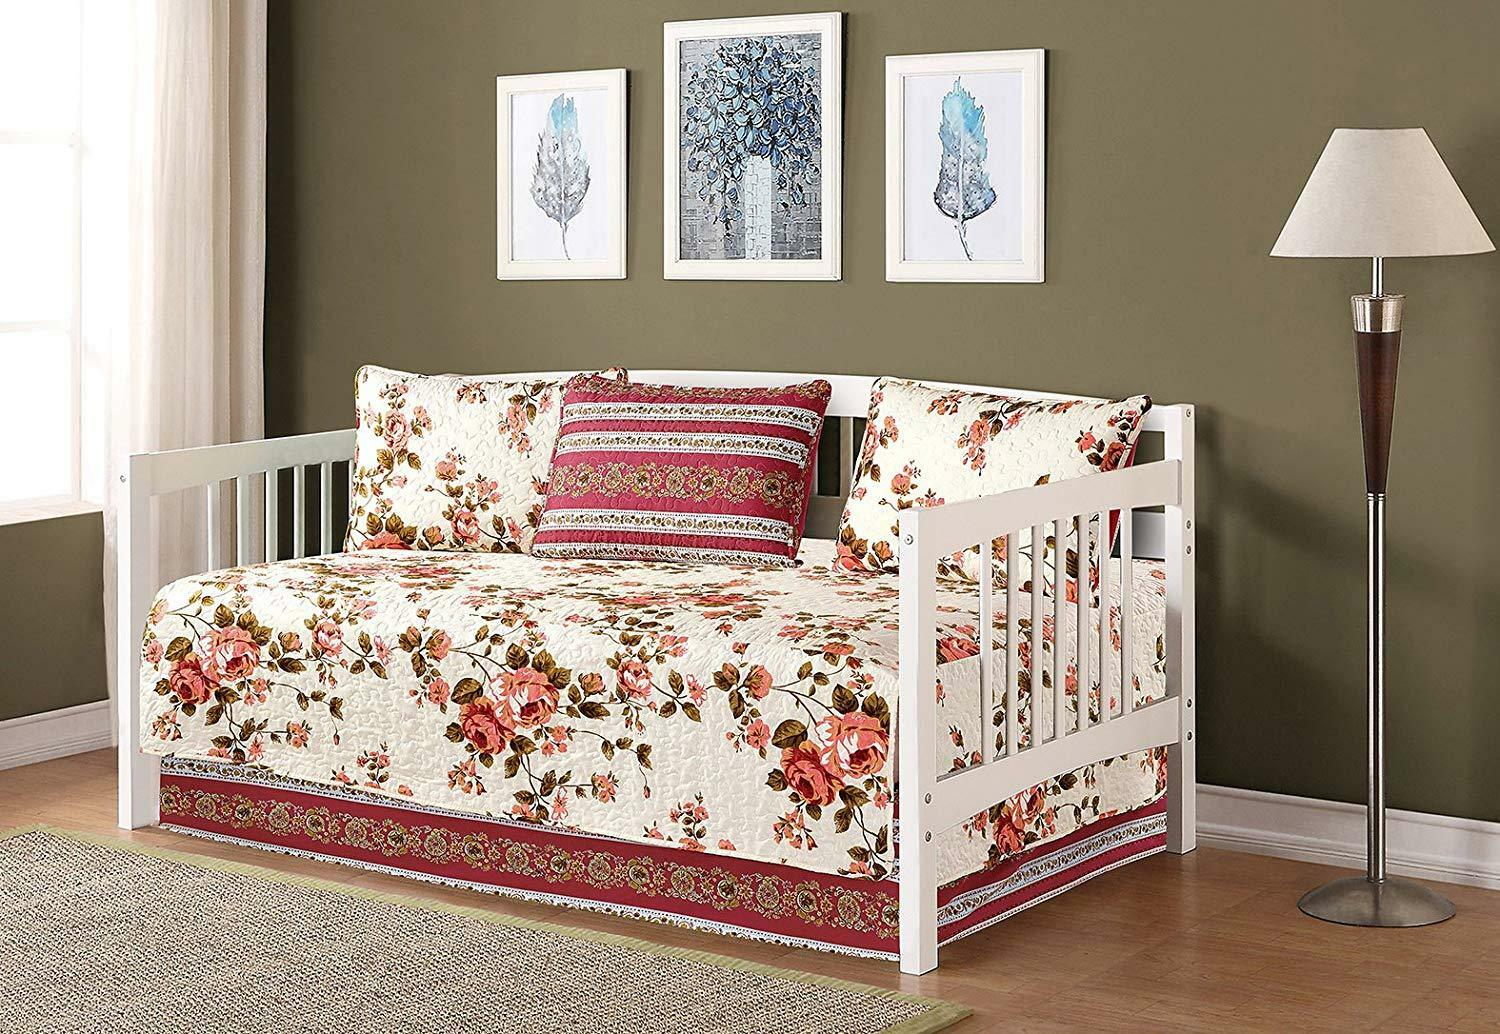 Fancy Linen 5pc Day Bed Cover Floral Beige Pink Green New